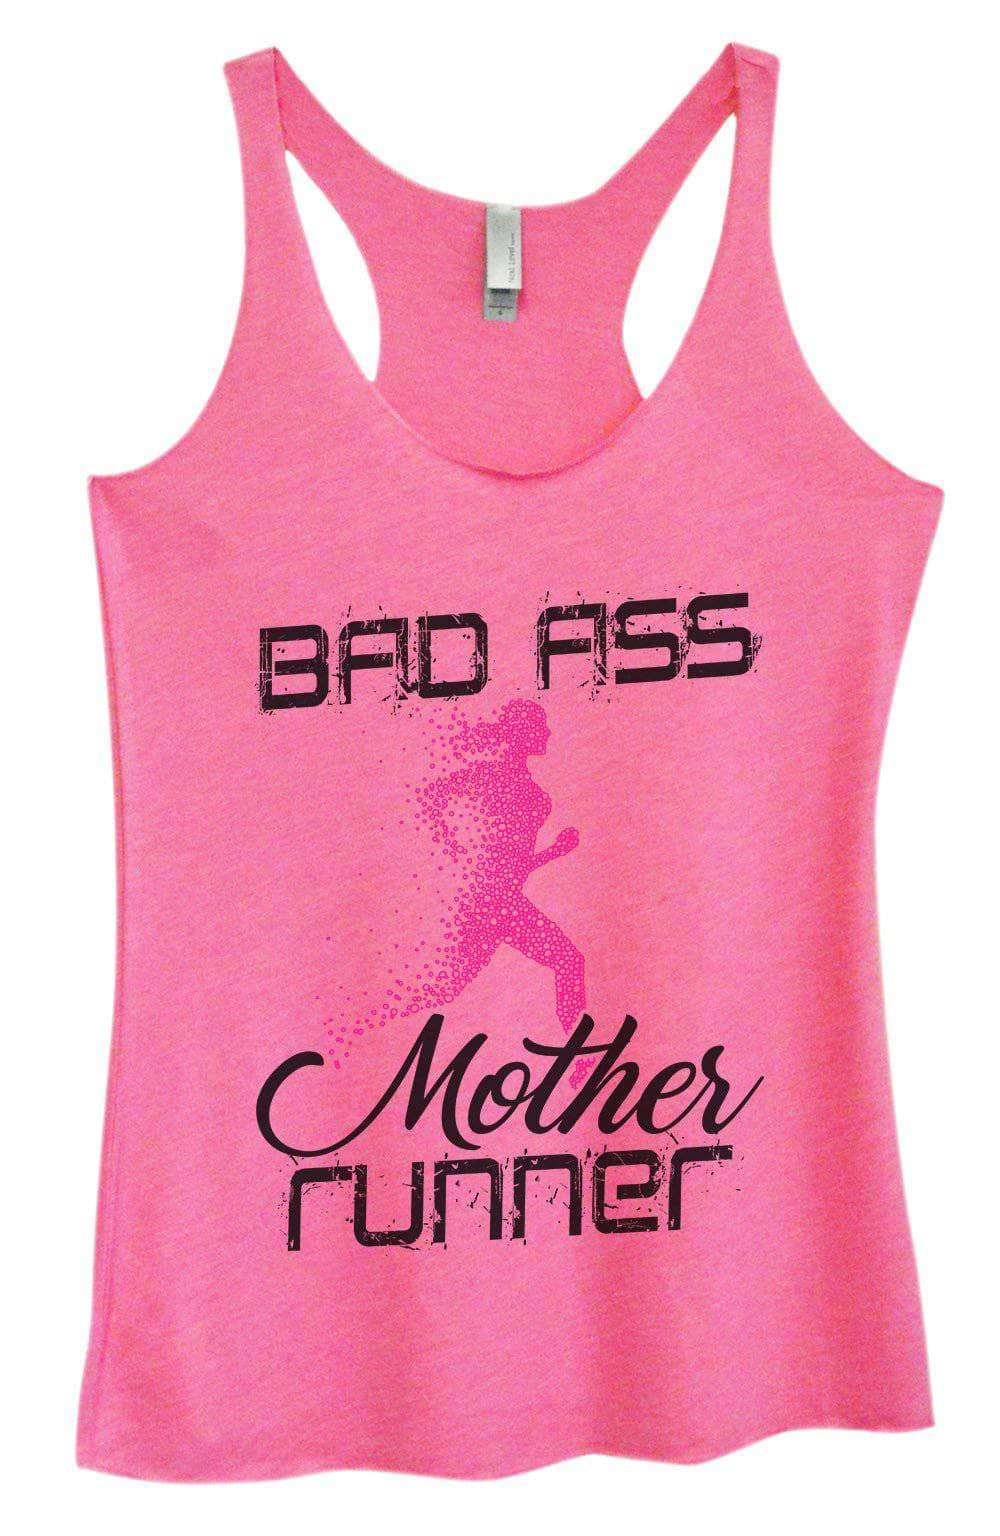 Womens Tri-Blend Tank Top - Bad Ass Mother Runner Small Womens Tank Tops Vintage Pink